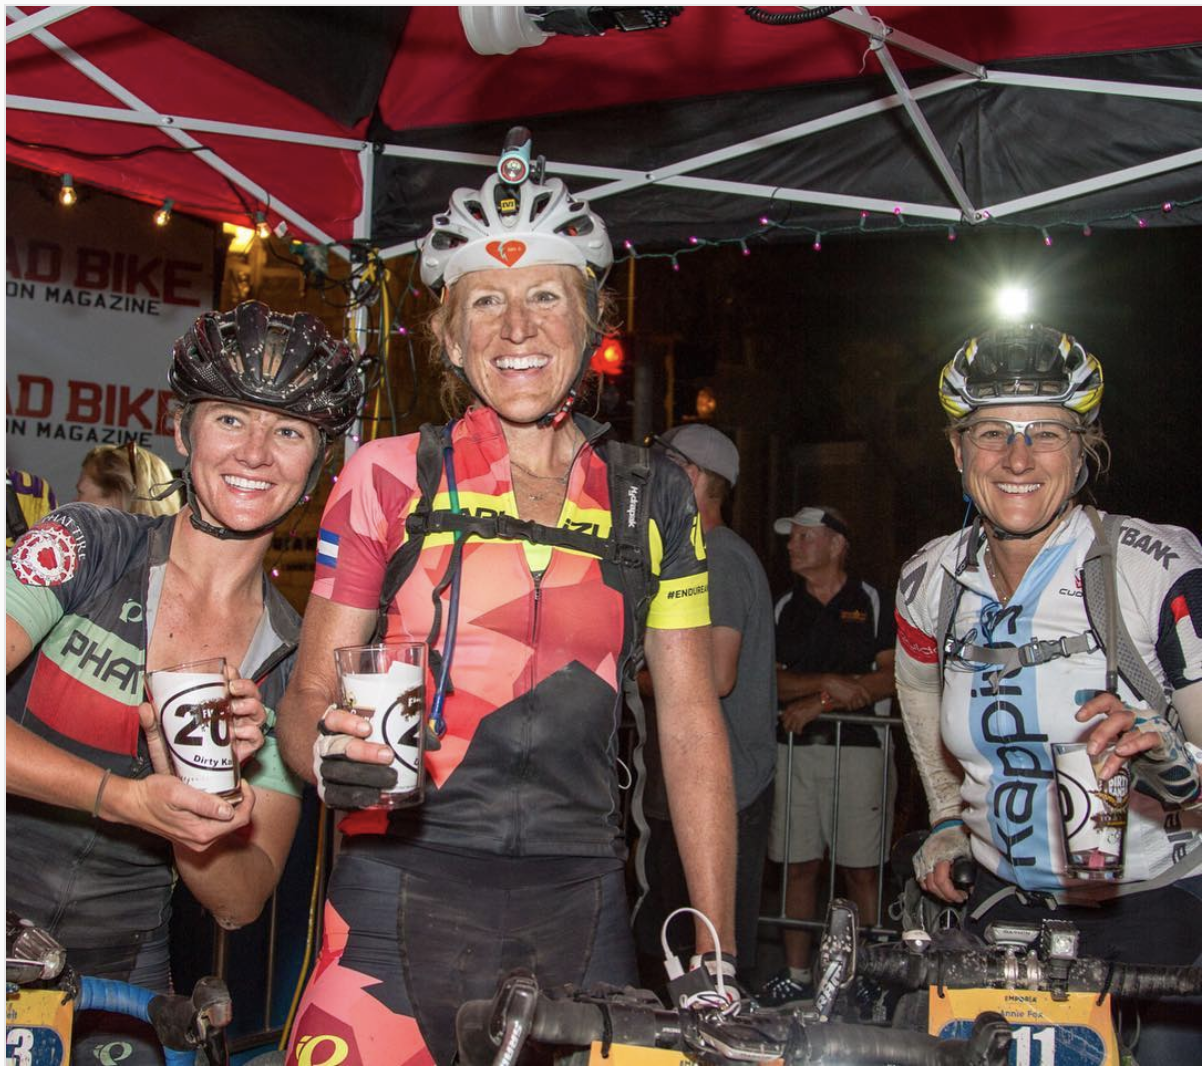 Finishers at the 2017 race.  Photo by Linda Guerrette, Source: @DirtyKanza Instagram.